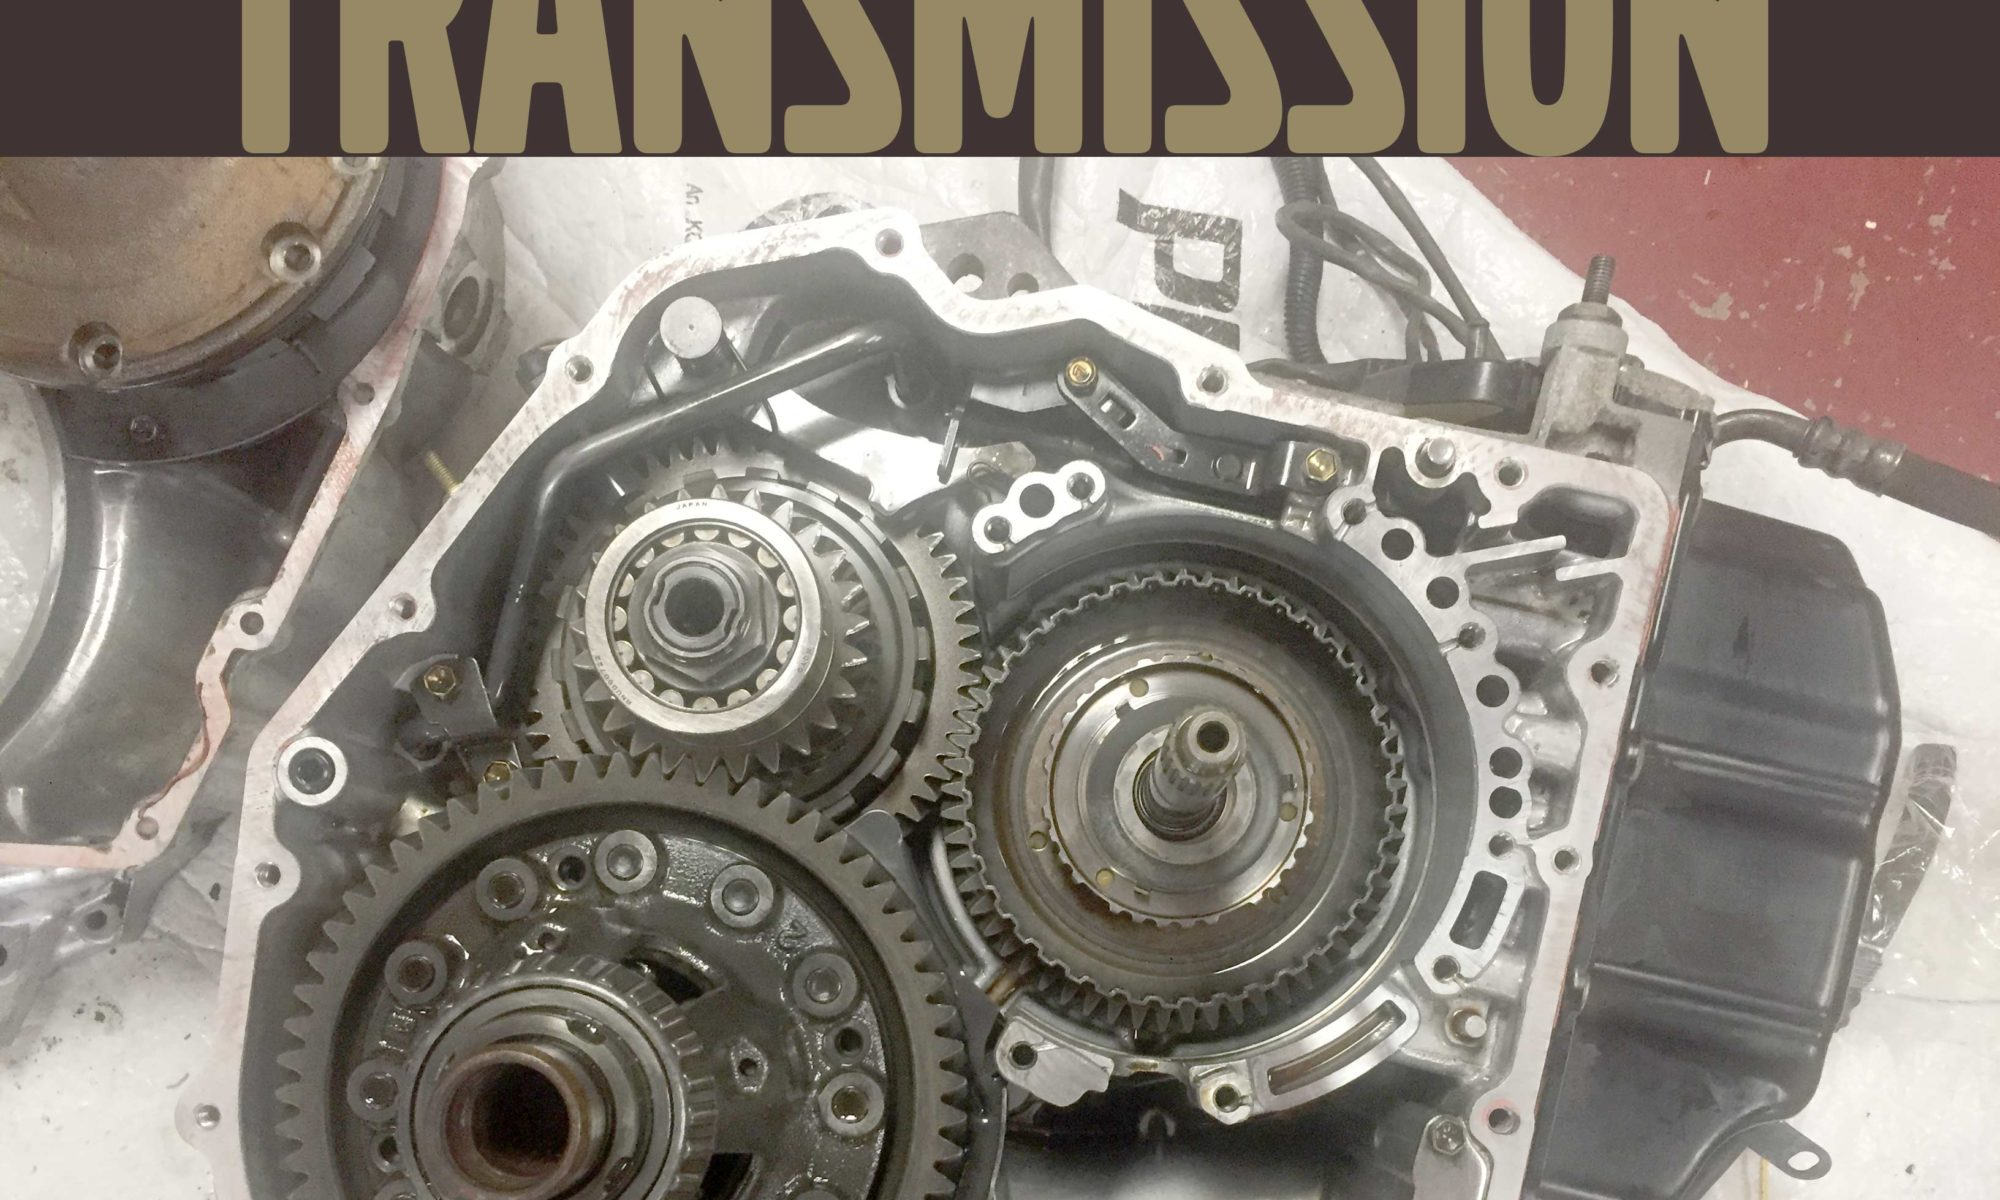 Repair the AW55-50SN Transmission in a 2001 V70